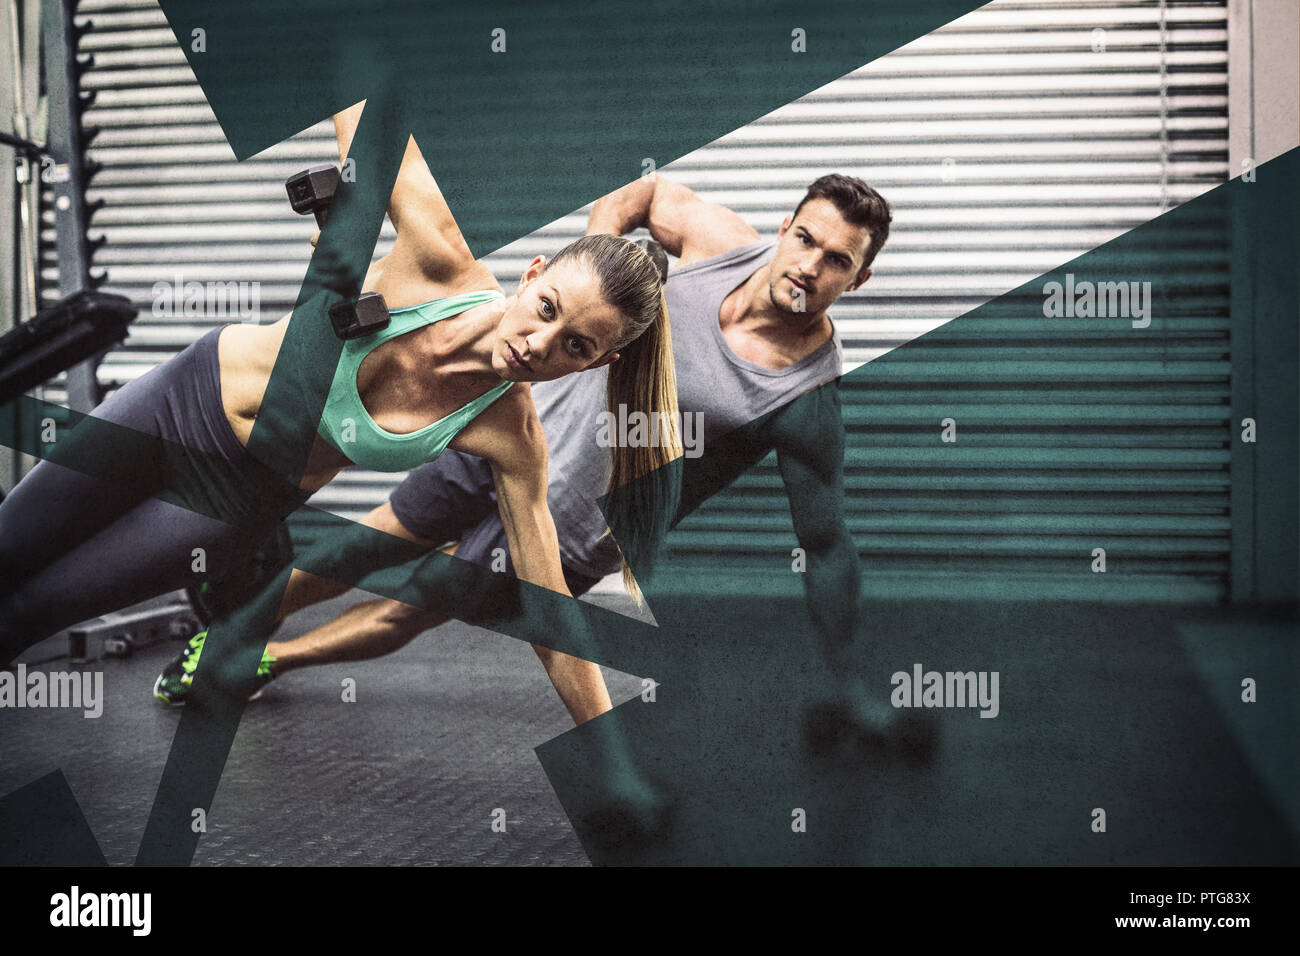 Smiling muscular couple doing side plank - Stock Image